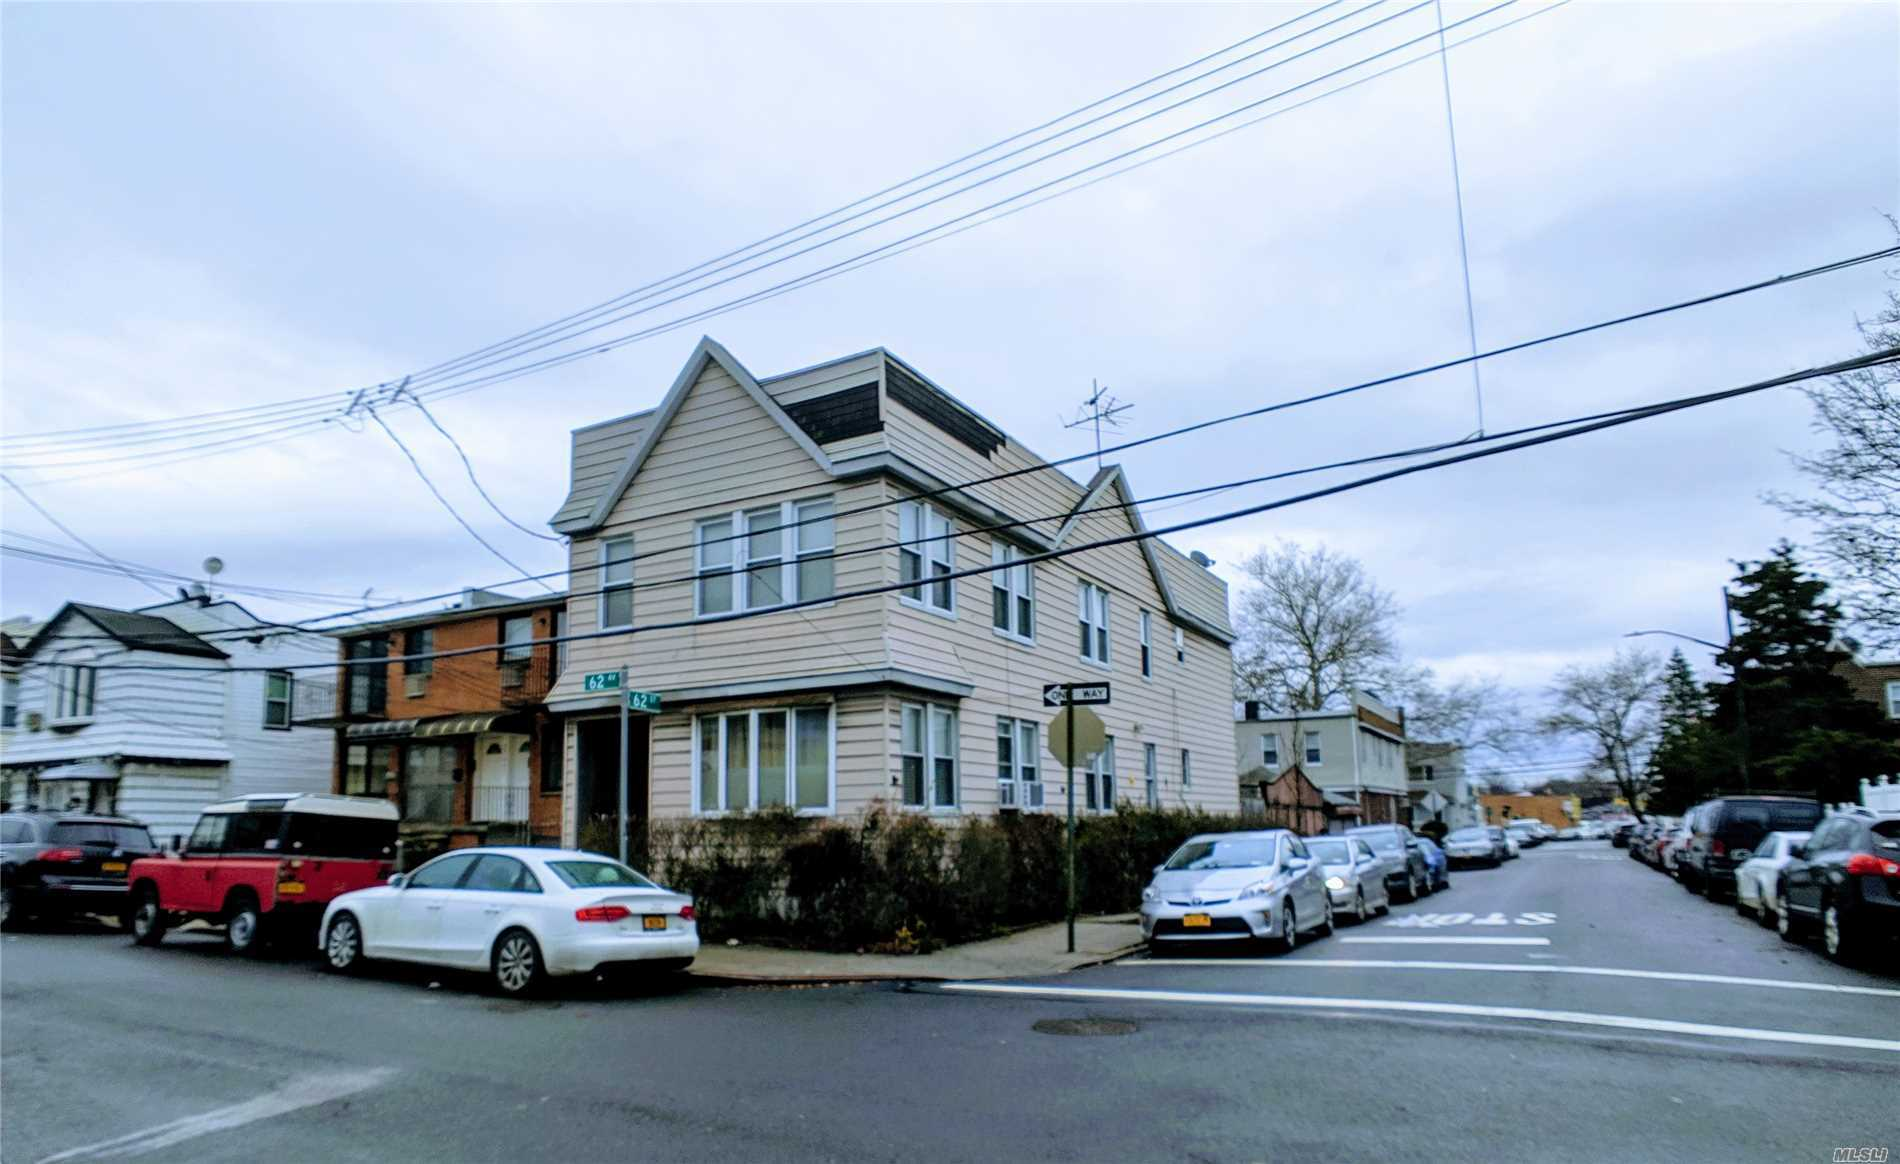 3 Family With 3 Car Garages Detach Corner Property In The Boarder Of Ridgewood, Maspeth And Middle Village.